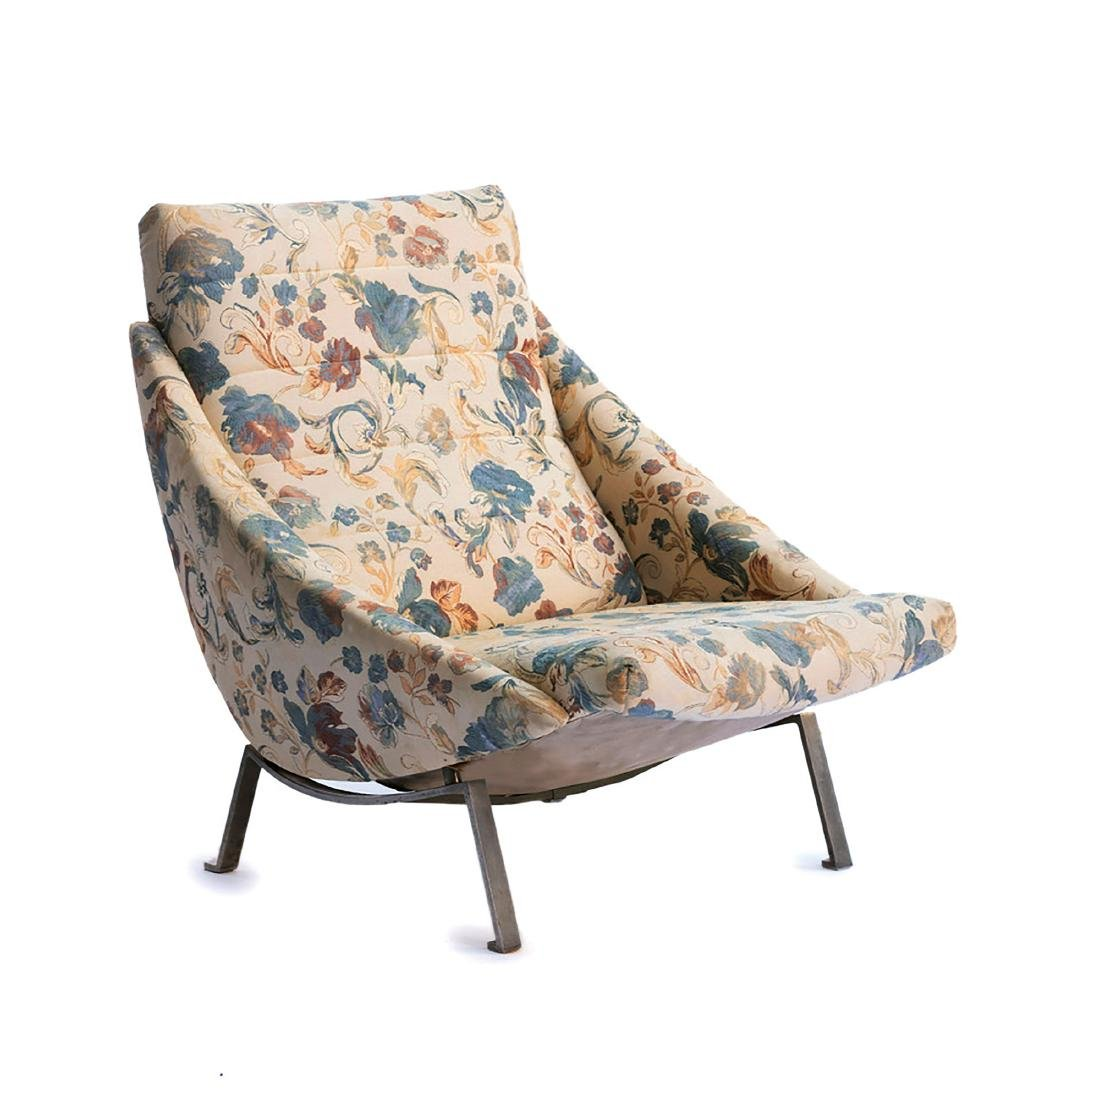 Comfy chair, c. 1957